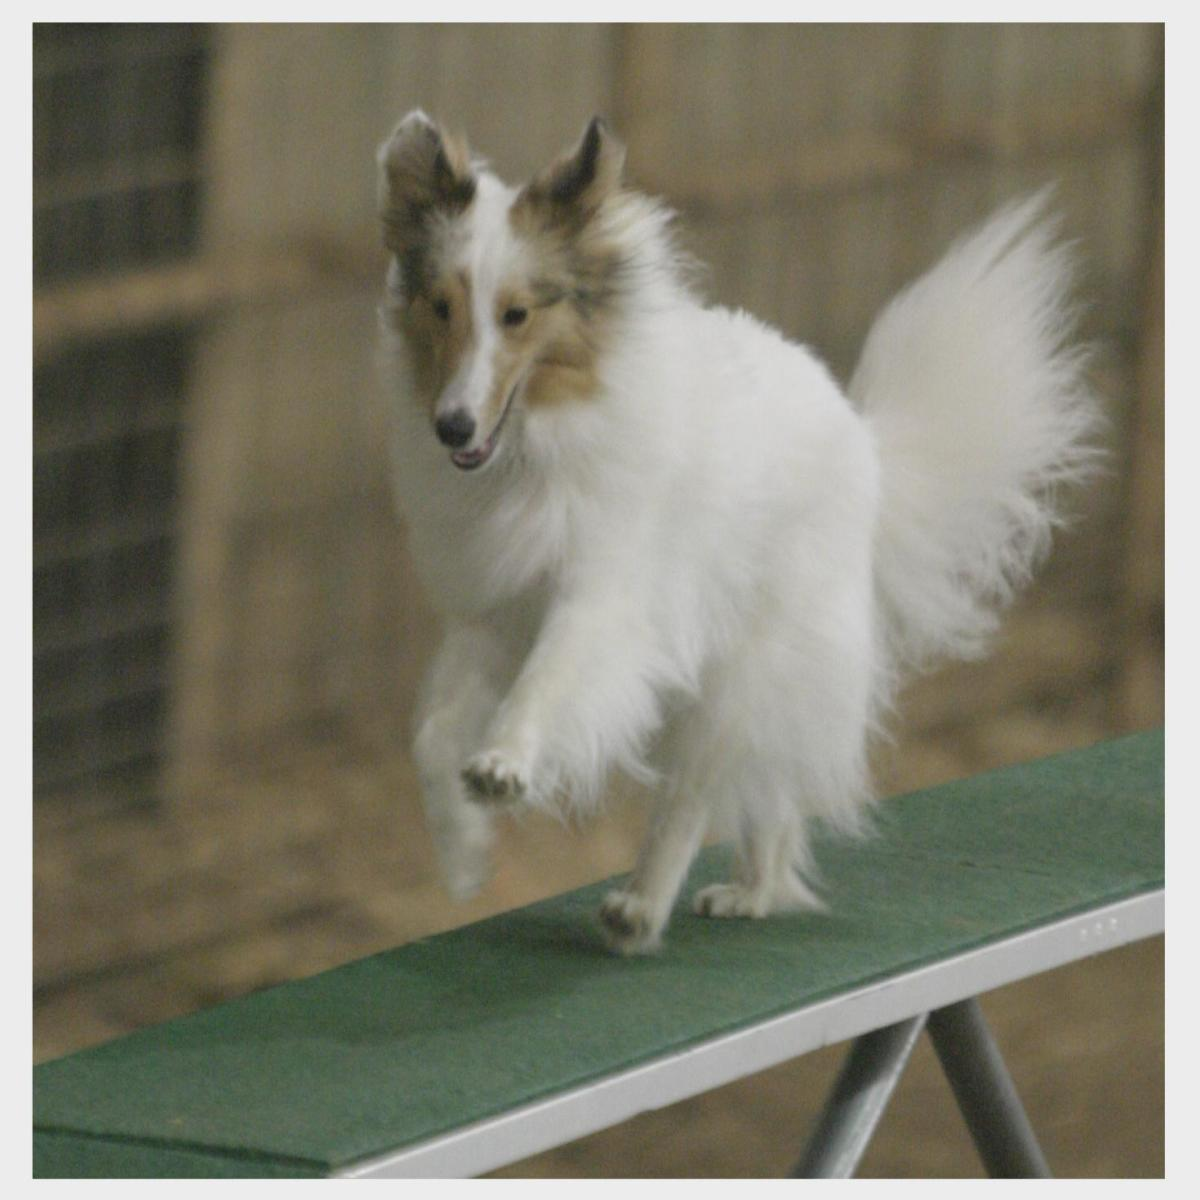 Here, the author's Sheltie is running over the dogwalk at his first agility trial.  Notice the high tail carriage.  This shows he is lacking some confidence on the dogwalk.